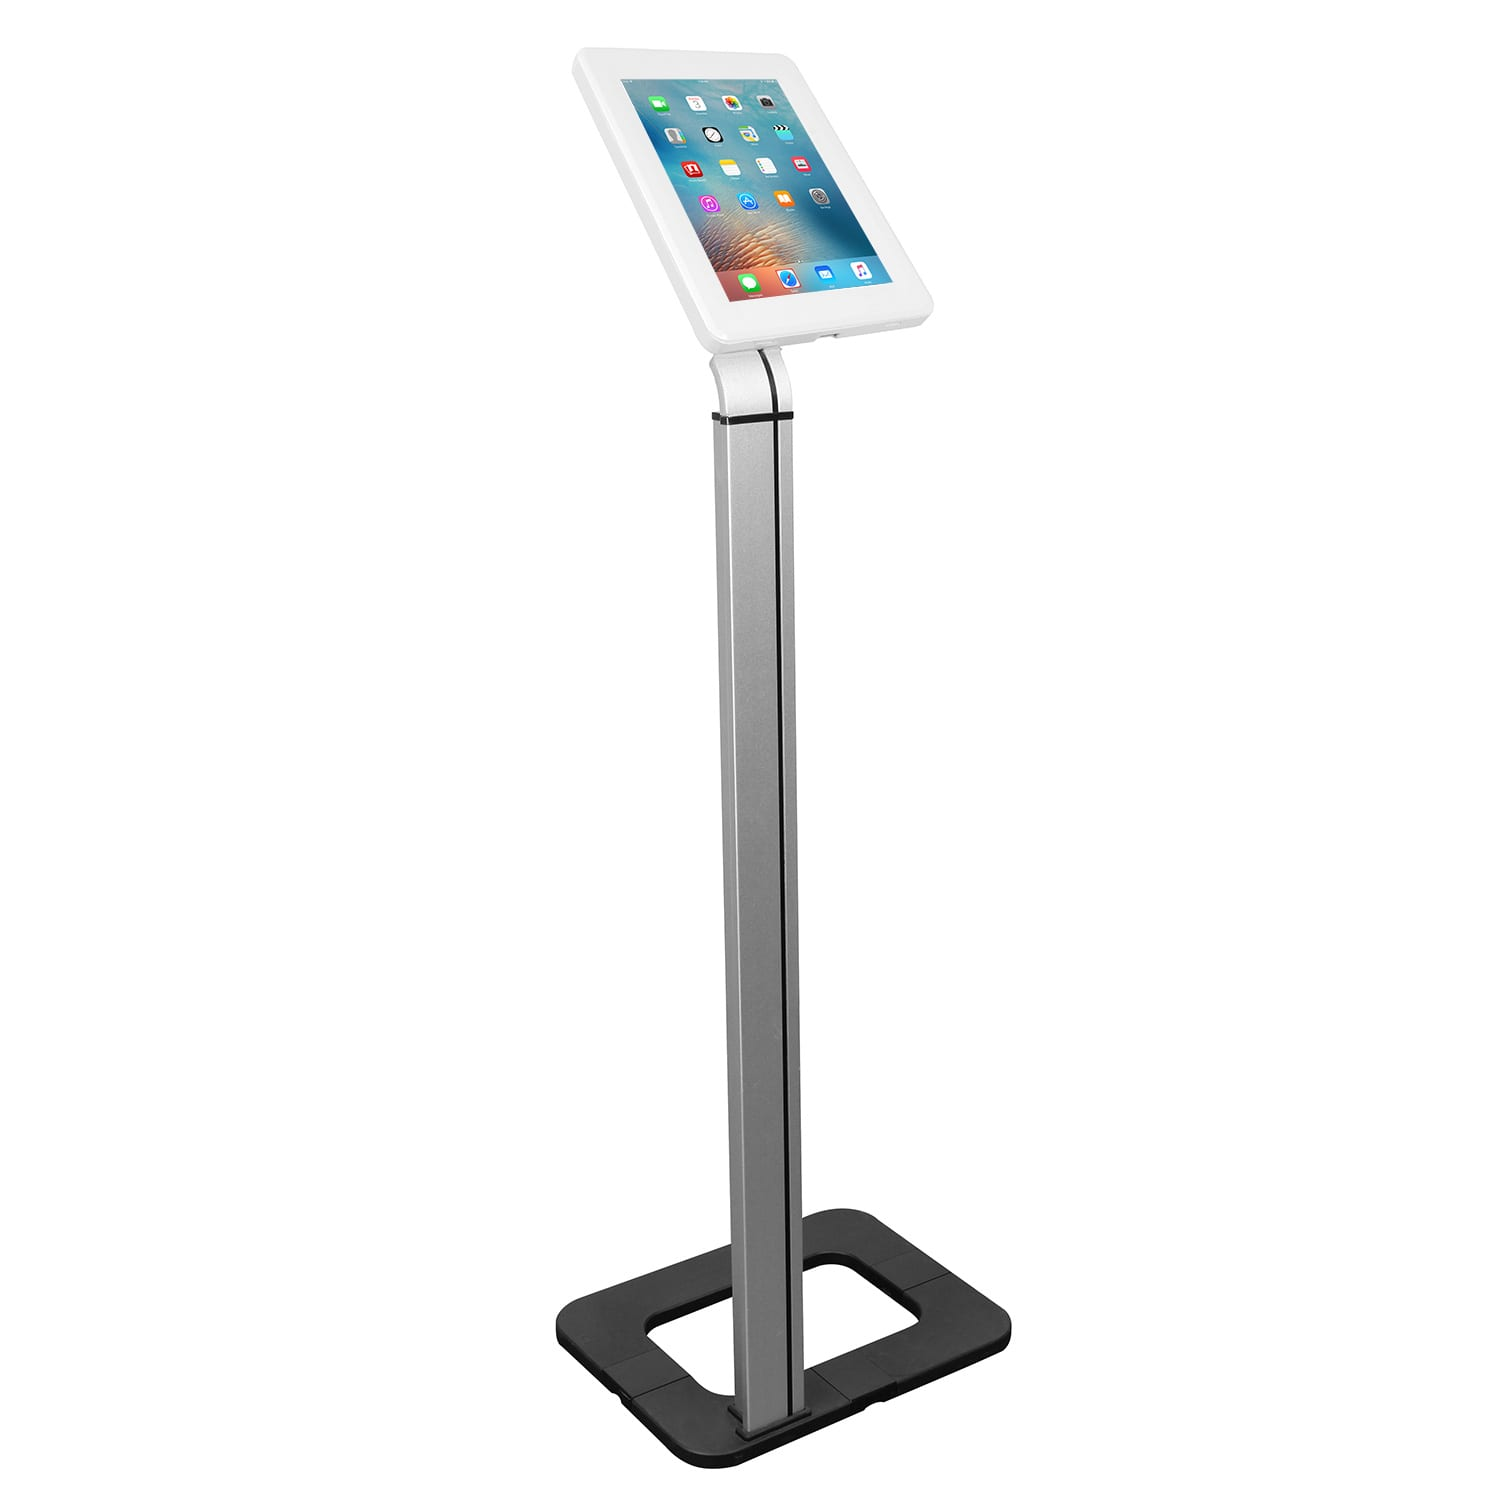 Brateck PAD1205 Anti-theft Universal Tablet Floor Stand Kiosk White